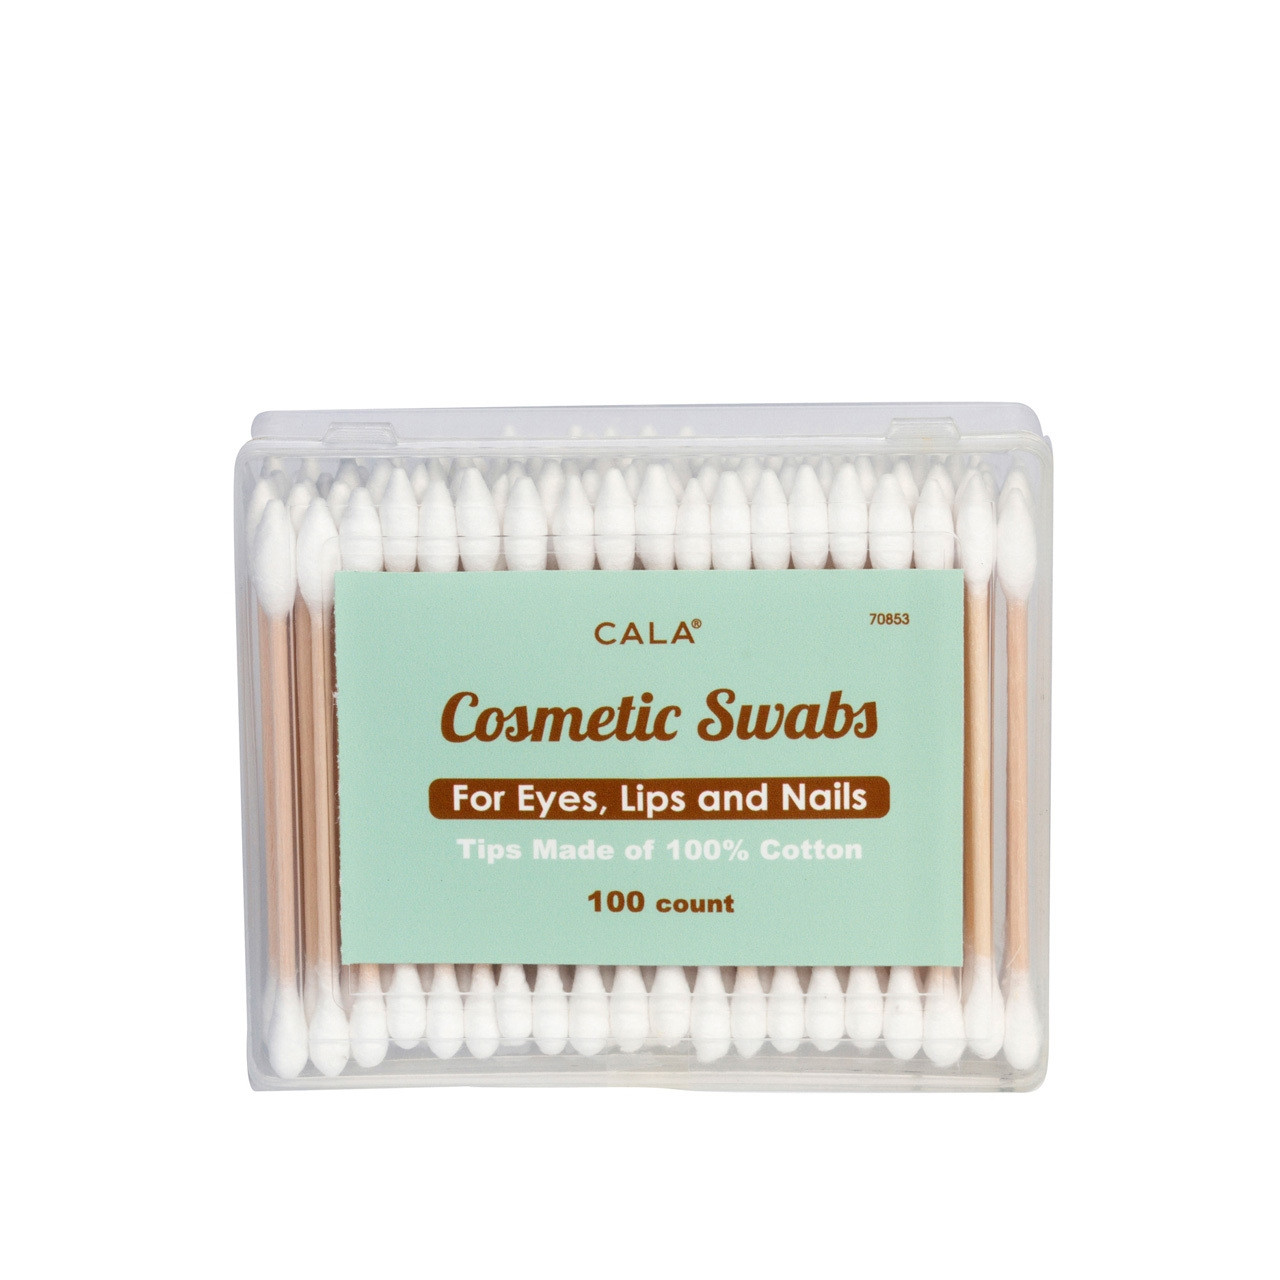 CALA COSMETIC SWABS 100 PIECES-70853